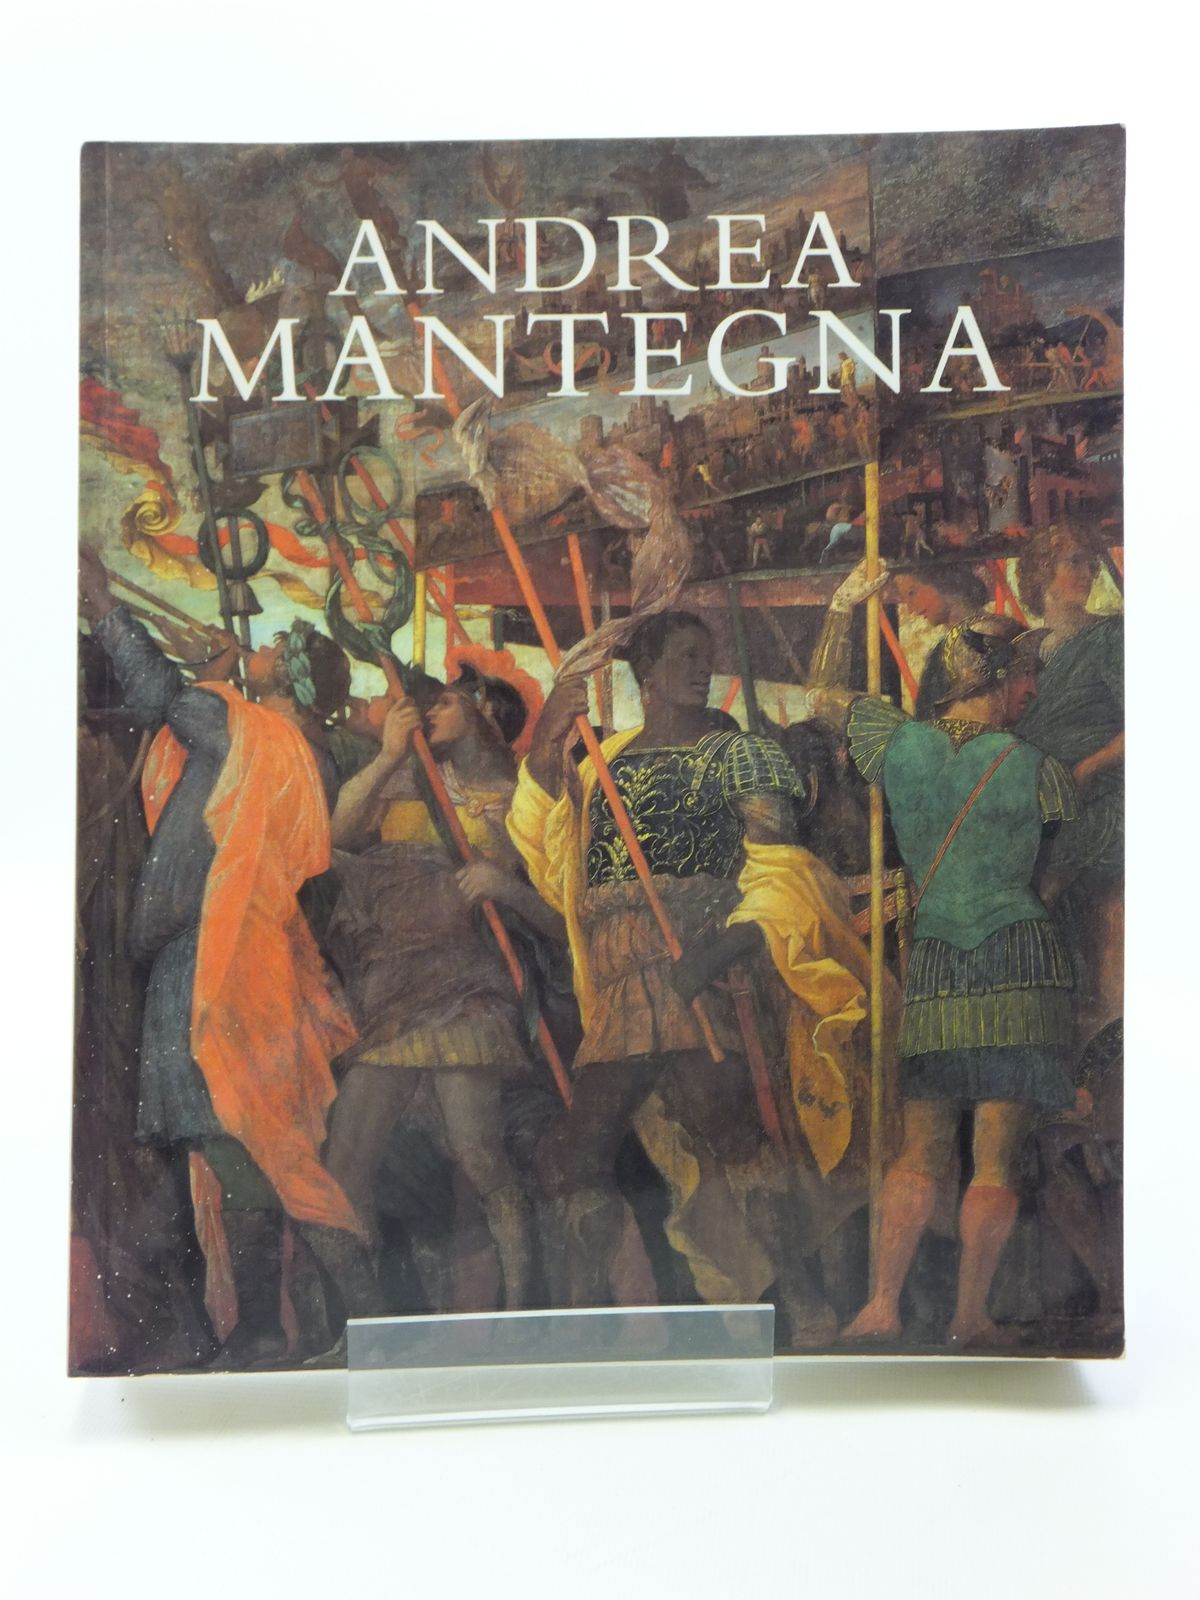 Photo of ANDREA MANTEGNA written by Martineau, Jane illustrated by Mantegna, Andrea published by Olivetti, Electa (STOCK CODE: 1607978)  for sale by Stella & Rose's Books